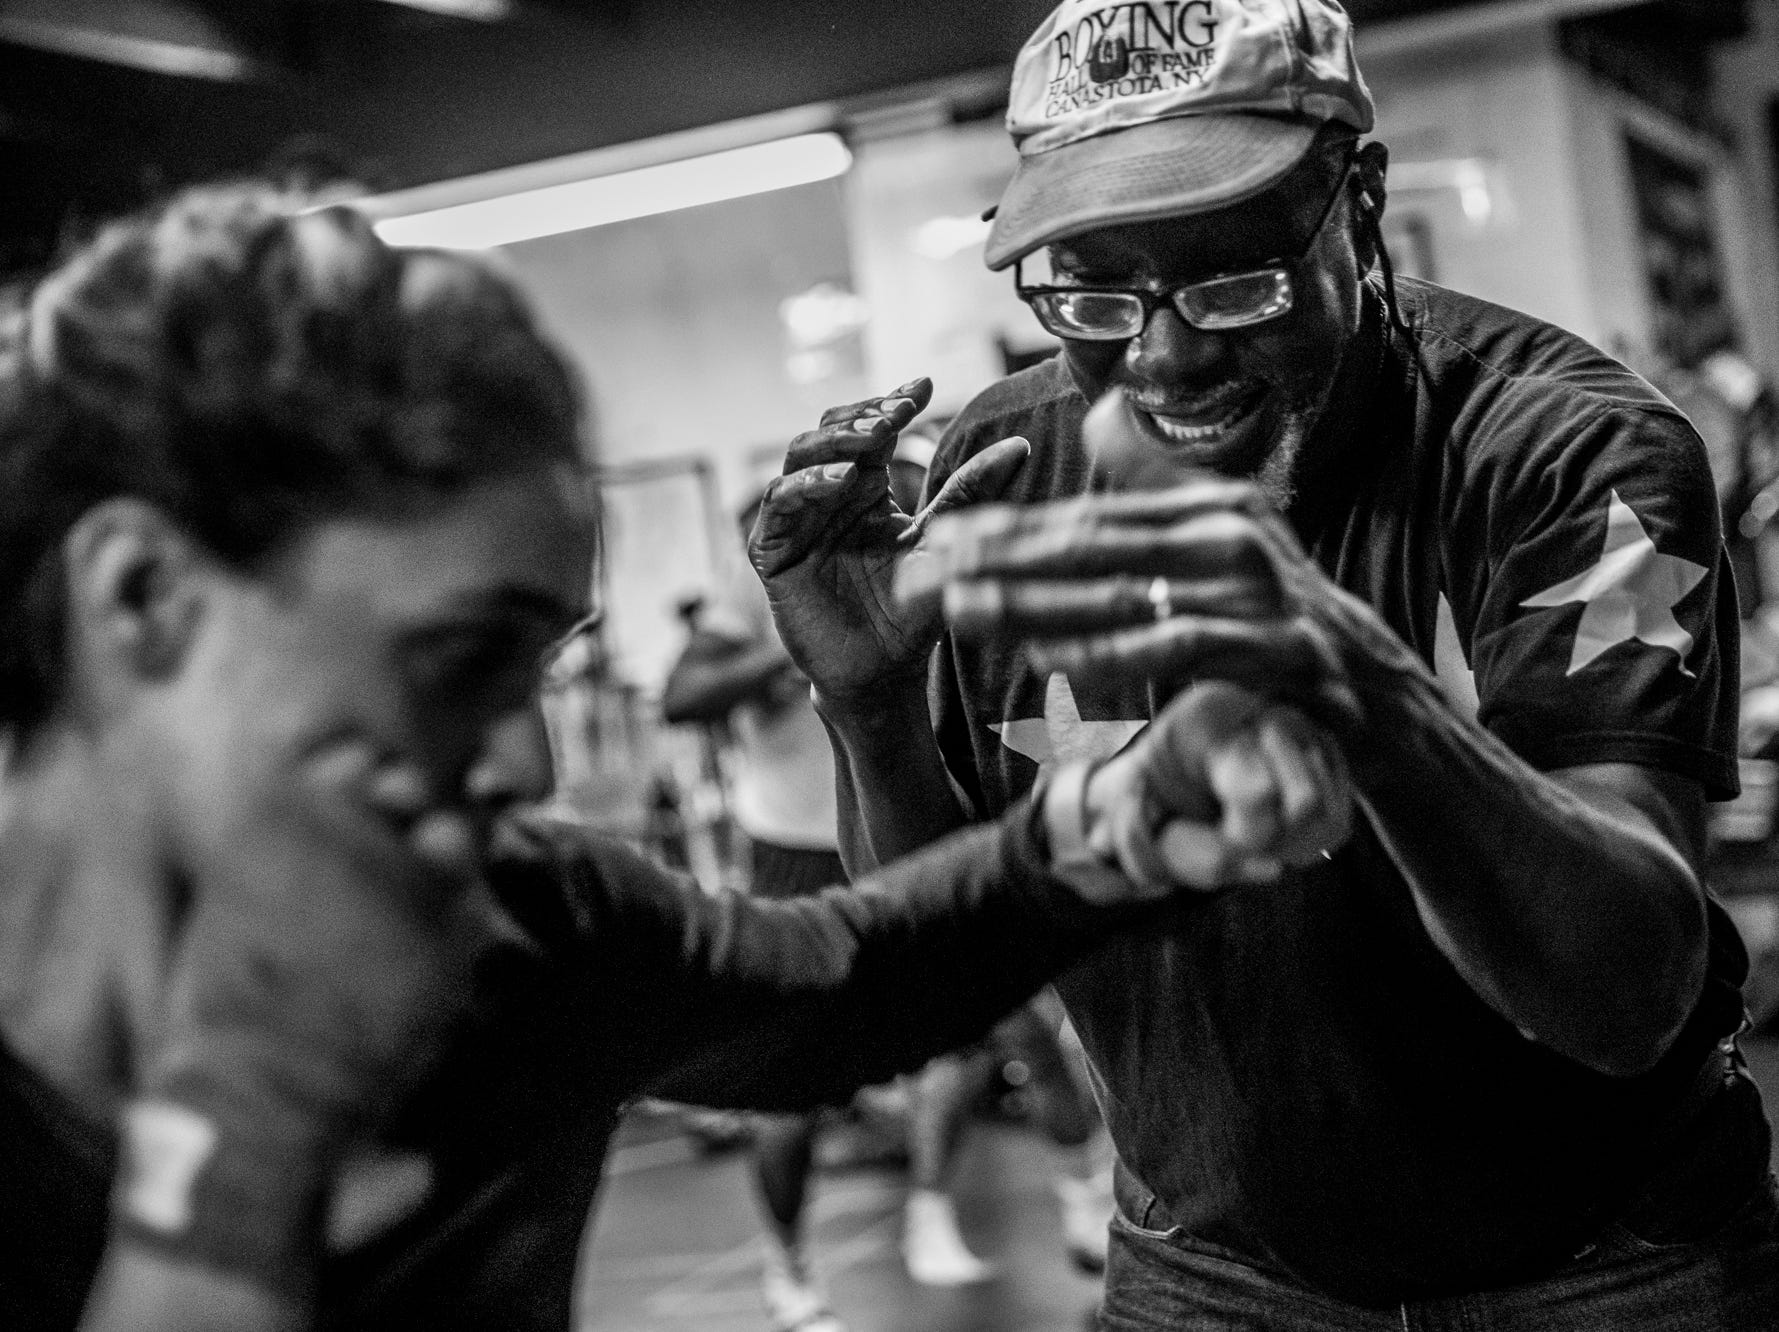 """Bring it before you shoot it,"" said Sugar Ray Seales, while training boxing students on Monday, March 26, 2018. ""Way to work, way to work, way to work. That's right. Nice jab, now come get it. Step on it. That's that jab. That's that jab. Good."""